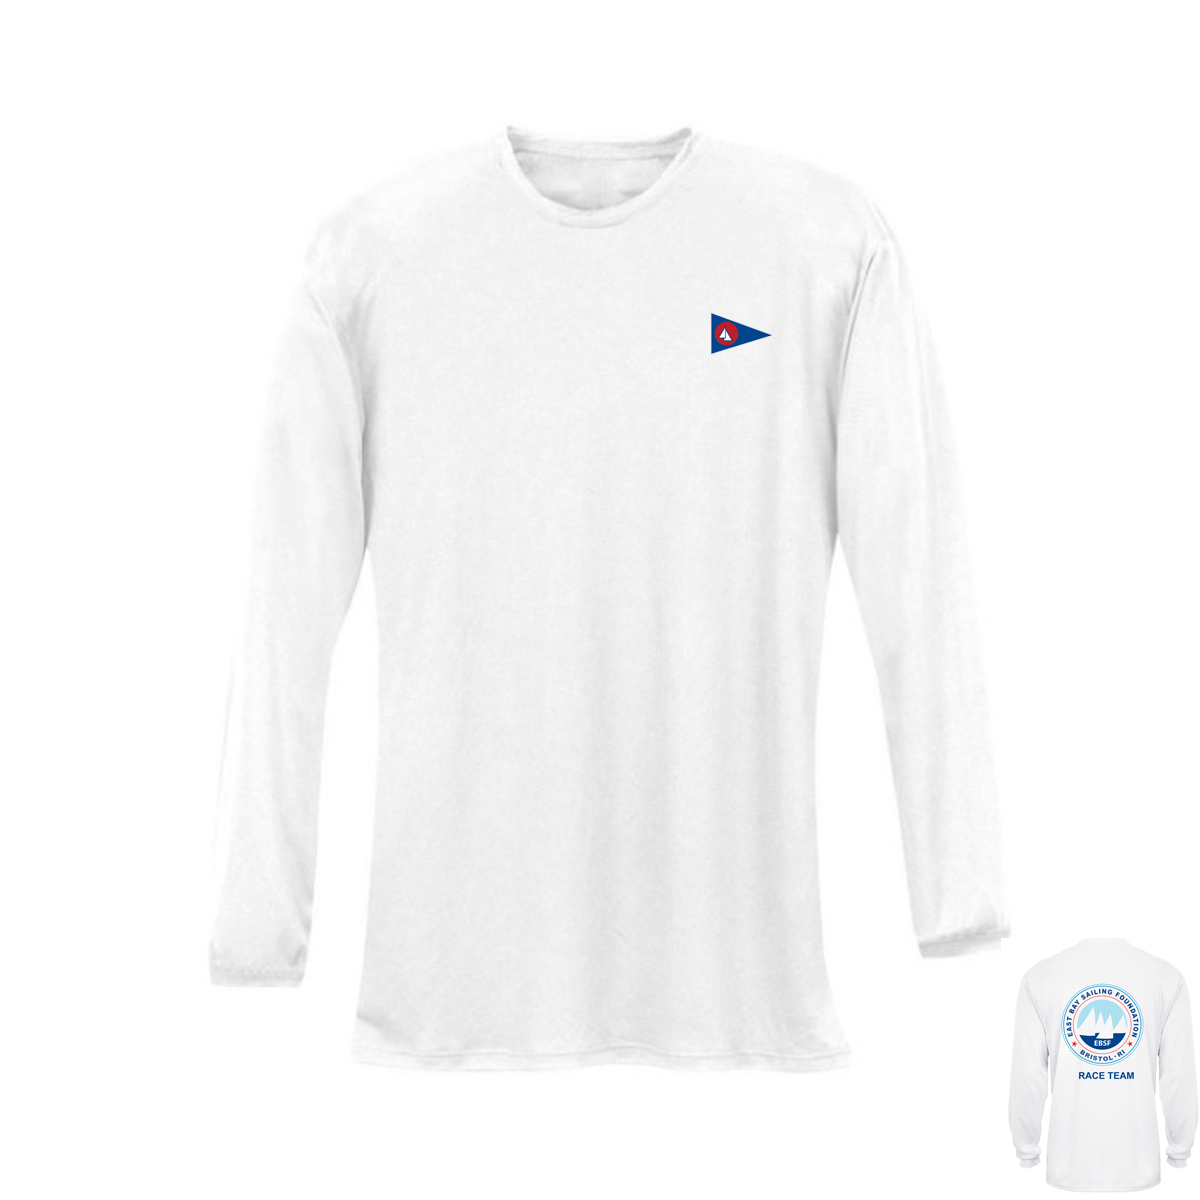 East Bay Sailing Foundation - Women's Race Team Long Sleeve Tech Tee